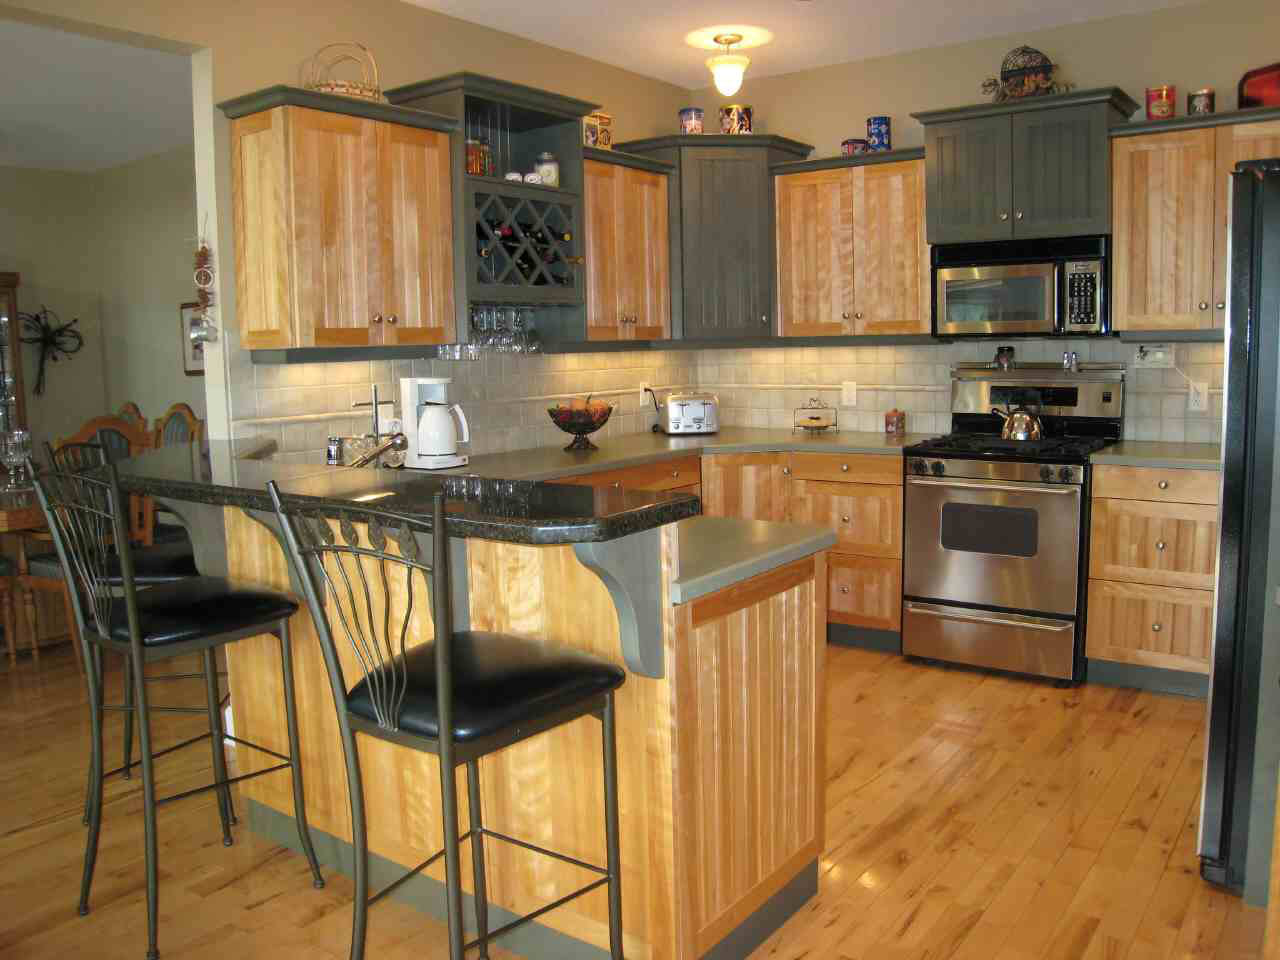 wooden kitchen set photo 6 - Ideas To Decorate Kitchen